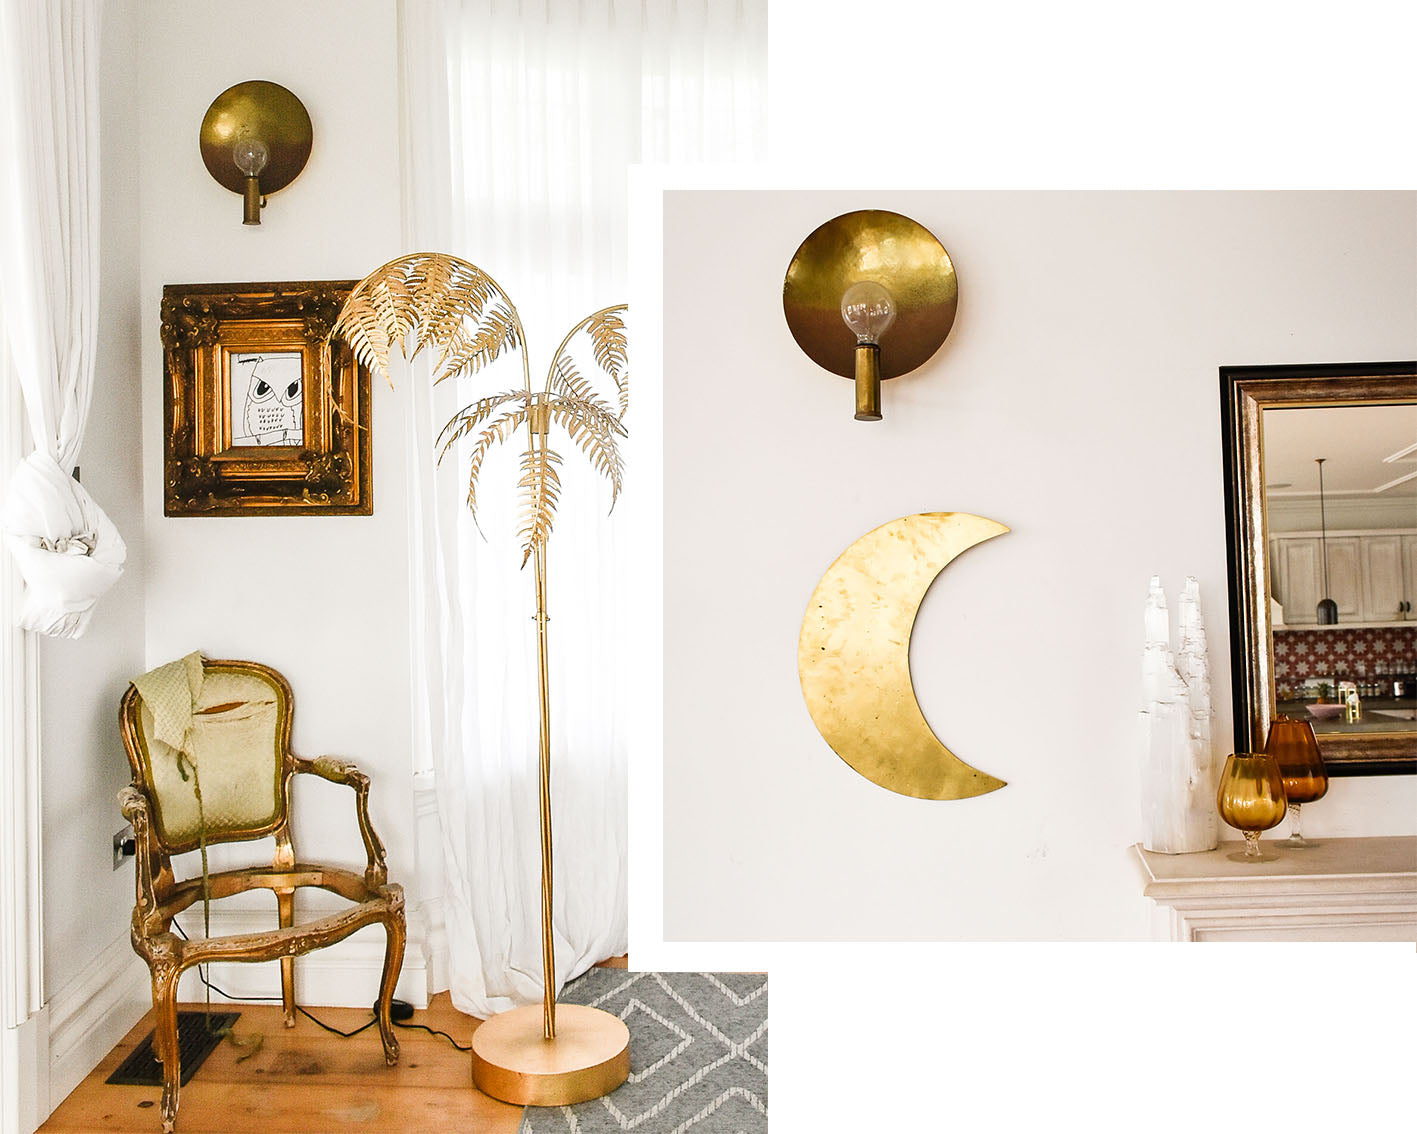 eclectic define eclectic eclectic design eclectic decor designer lighting pendant interior wall light exterior sconce lighting inspiration home design interior design floor lamps table lamp chandelier lamp pendant lighting bedside lamps ceiling lights